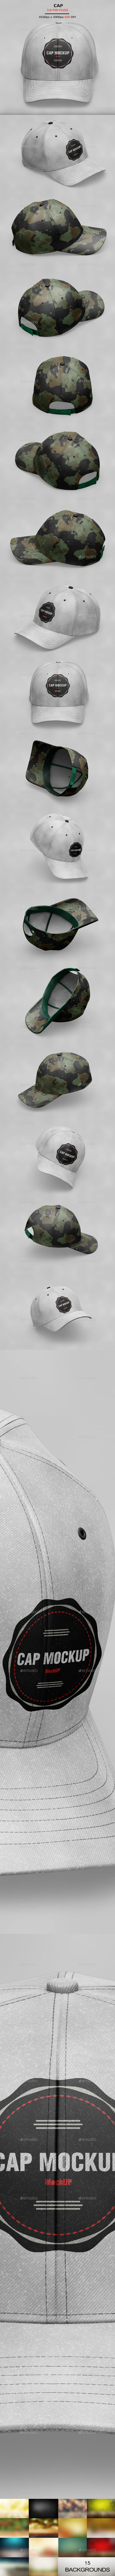 Baseball Cap Mockup - Product Mock-Ups Graphics